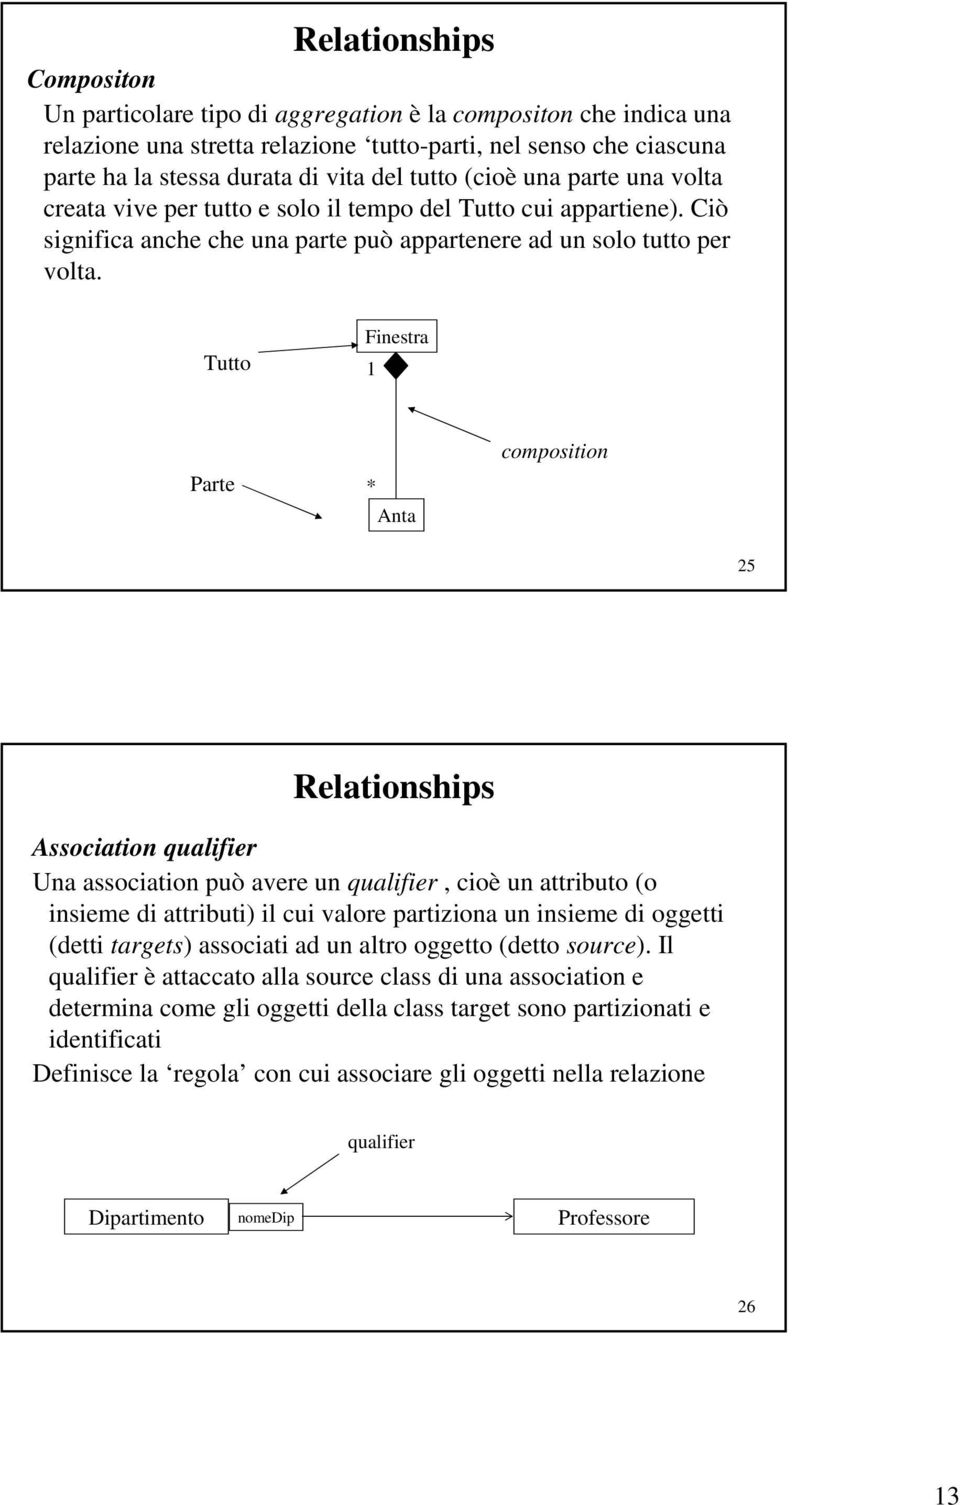 Tutto Finestra 1 Parte * Anta composition 25 Relationships Association qualifier Una association può avere un qualifier, cioè un attributo (o insieme di attributi) il cui valore partiziona un insieme